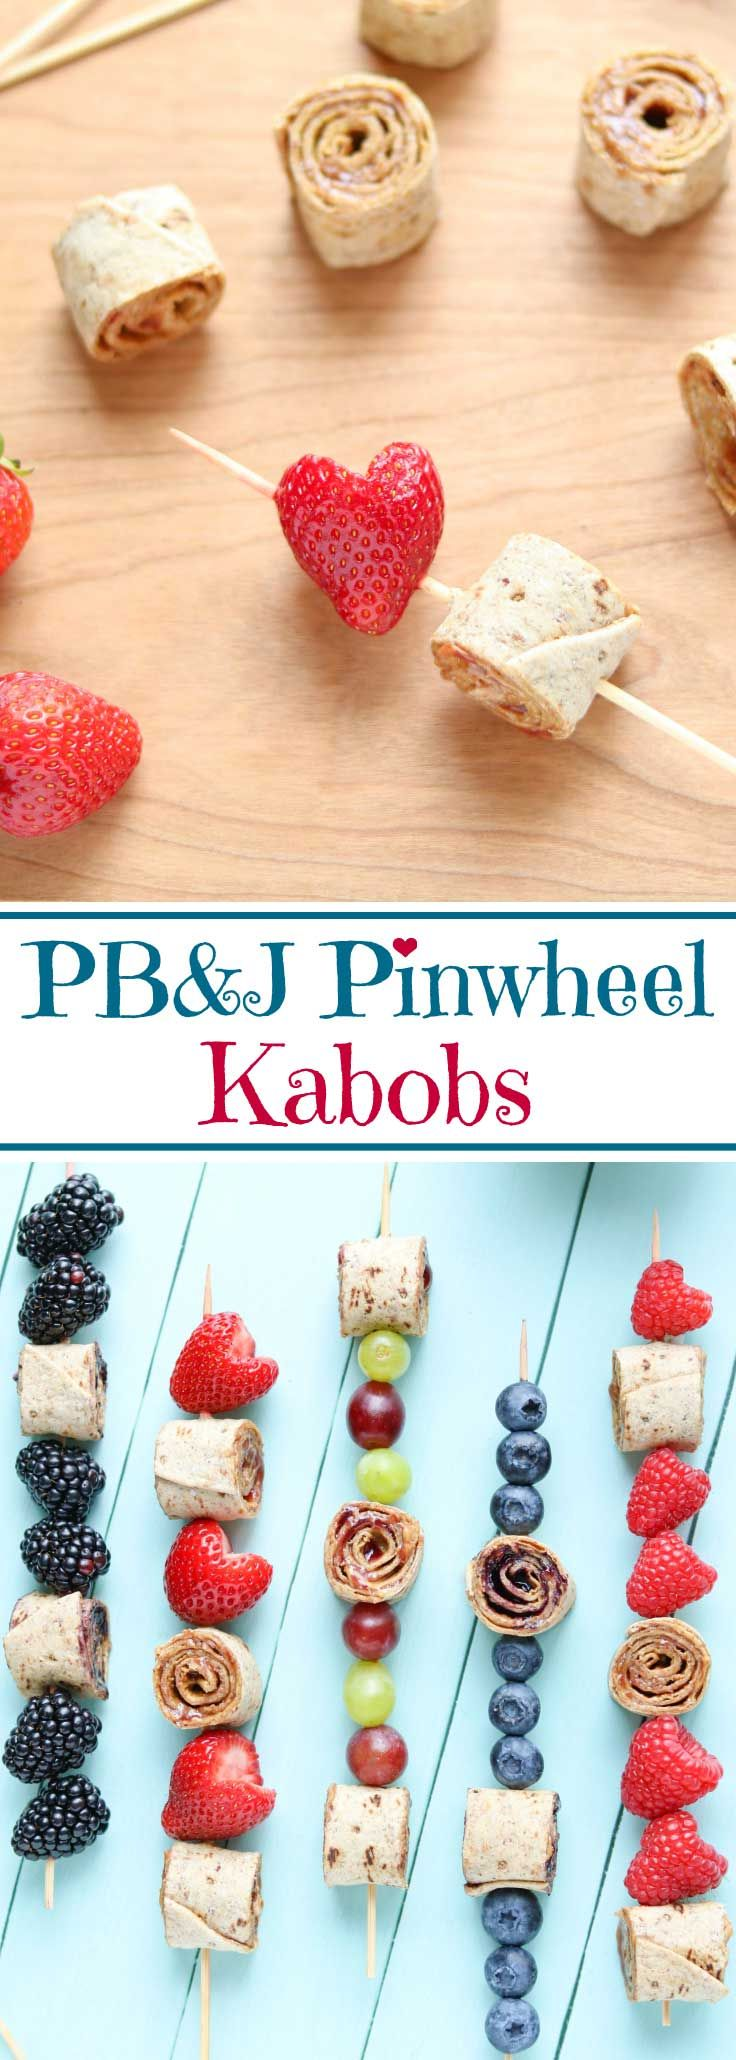 Easy and fun kids' lunch idea! So cute – they'll love this! Classic peanut butter and jelly sandwiches get a fresh twist as these PB&J Pinwheel Sandwich Kabobs! Perfect school lunch box recipe: healthy peanut butter and jelly pinwheels and fruit, together on a skewer for a fun kids' lunch recipe (with allergy-friendly, nut-free suggestions, too)! These sandwich skewers are the perfect combo of PB&J sandwich roll-ups with fun fruit kabobs! An easy school lunch idea…